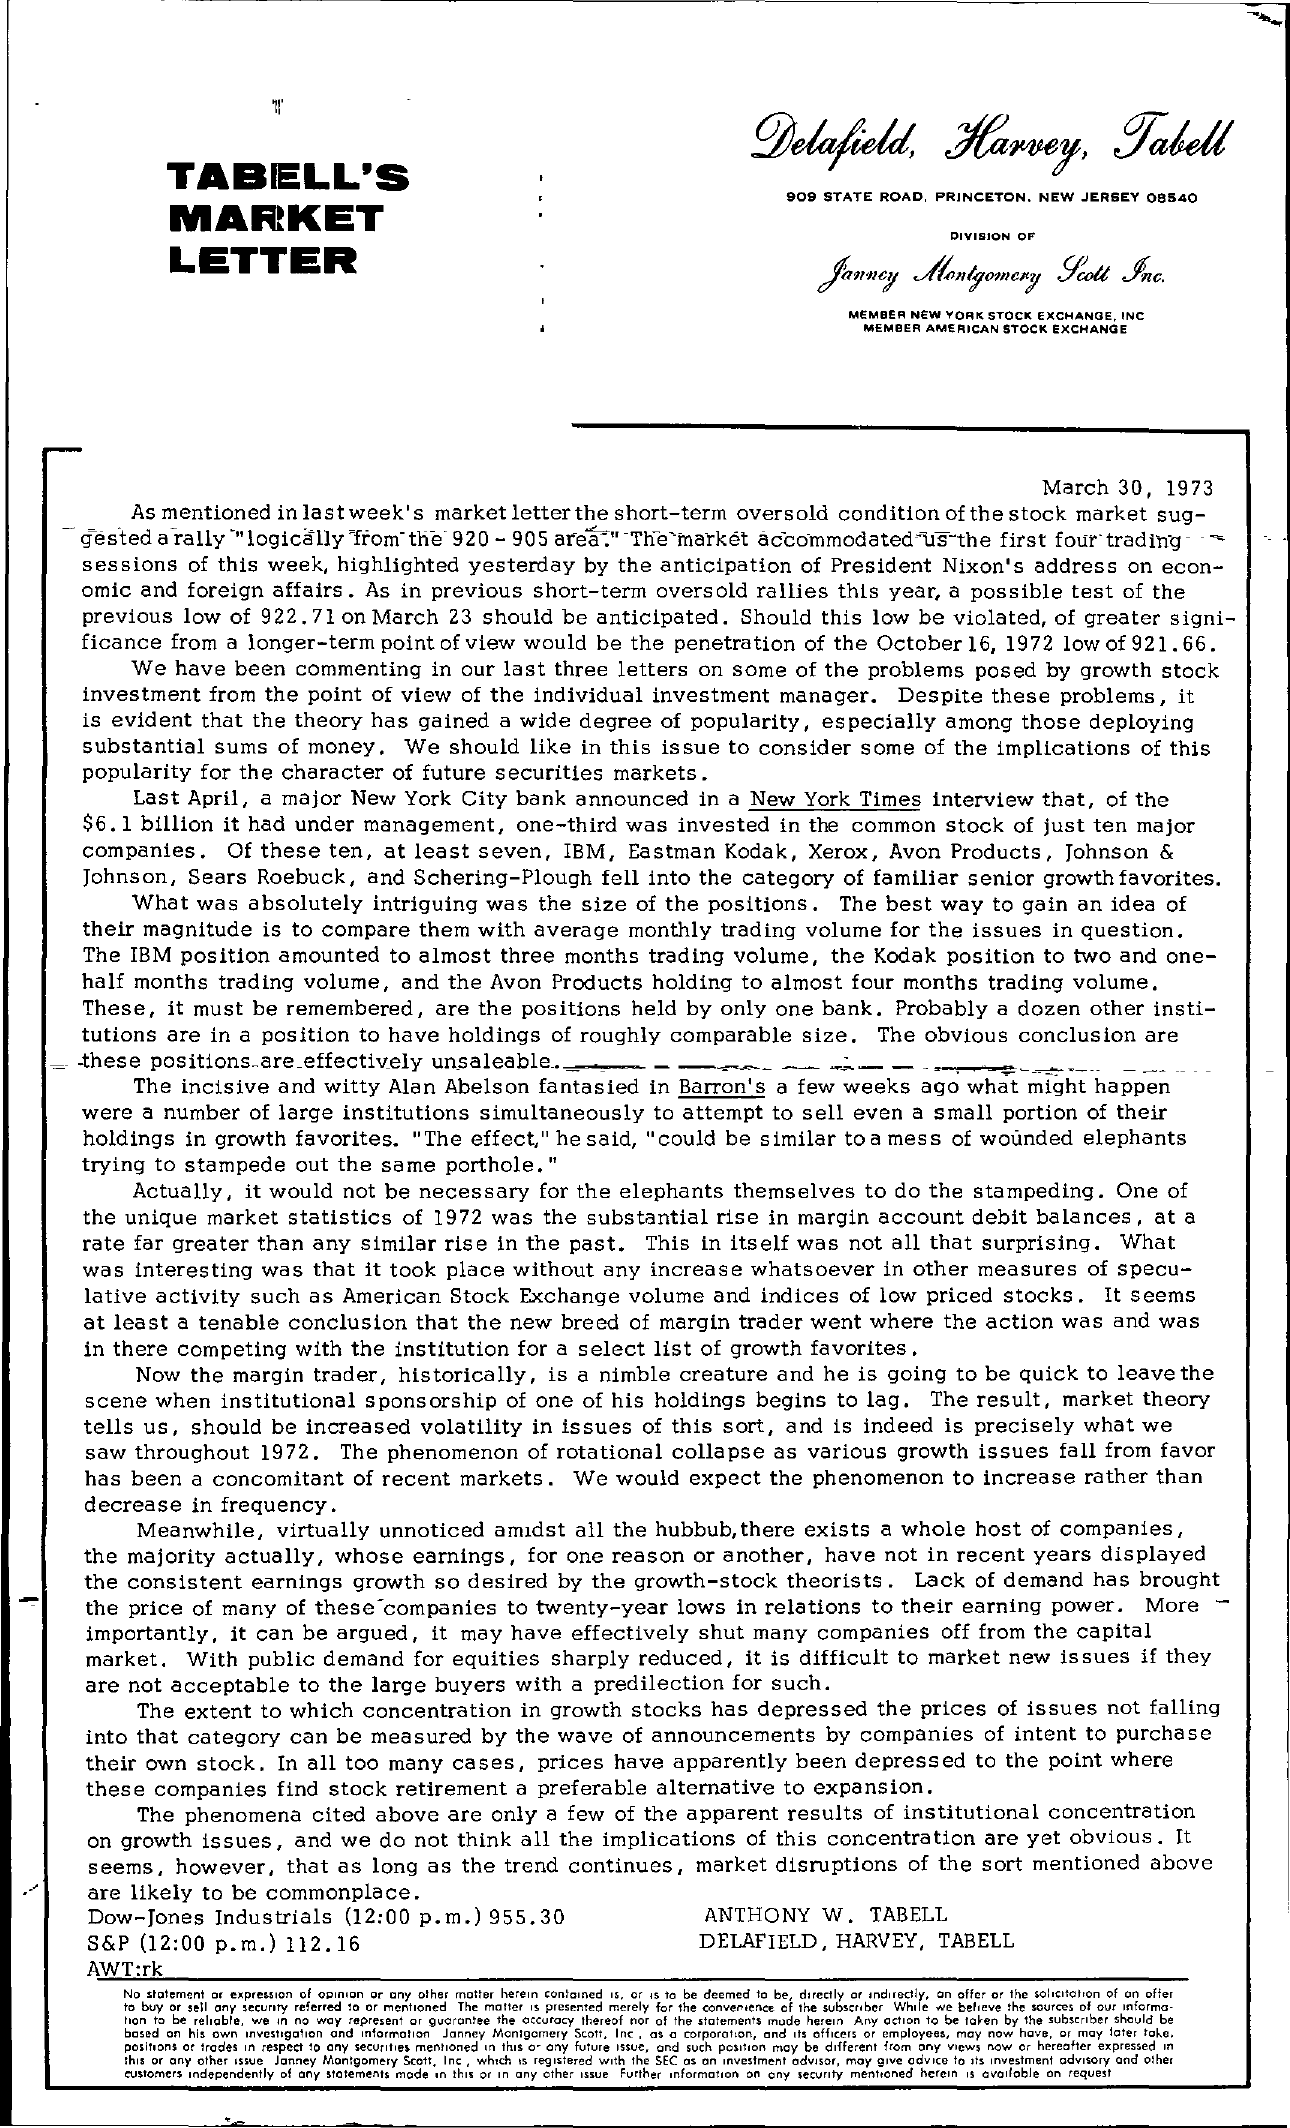 Tabell's Market Letter - March 30, 1973